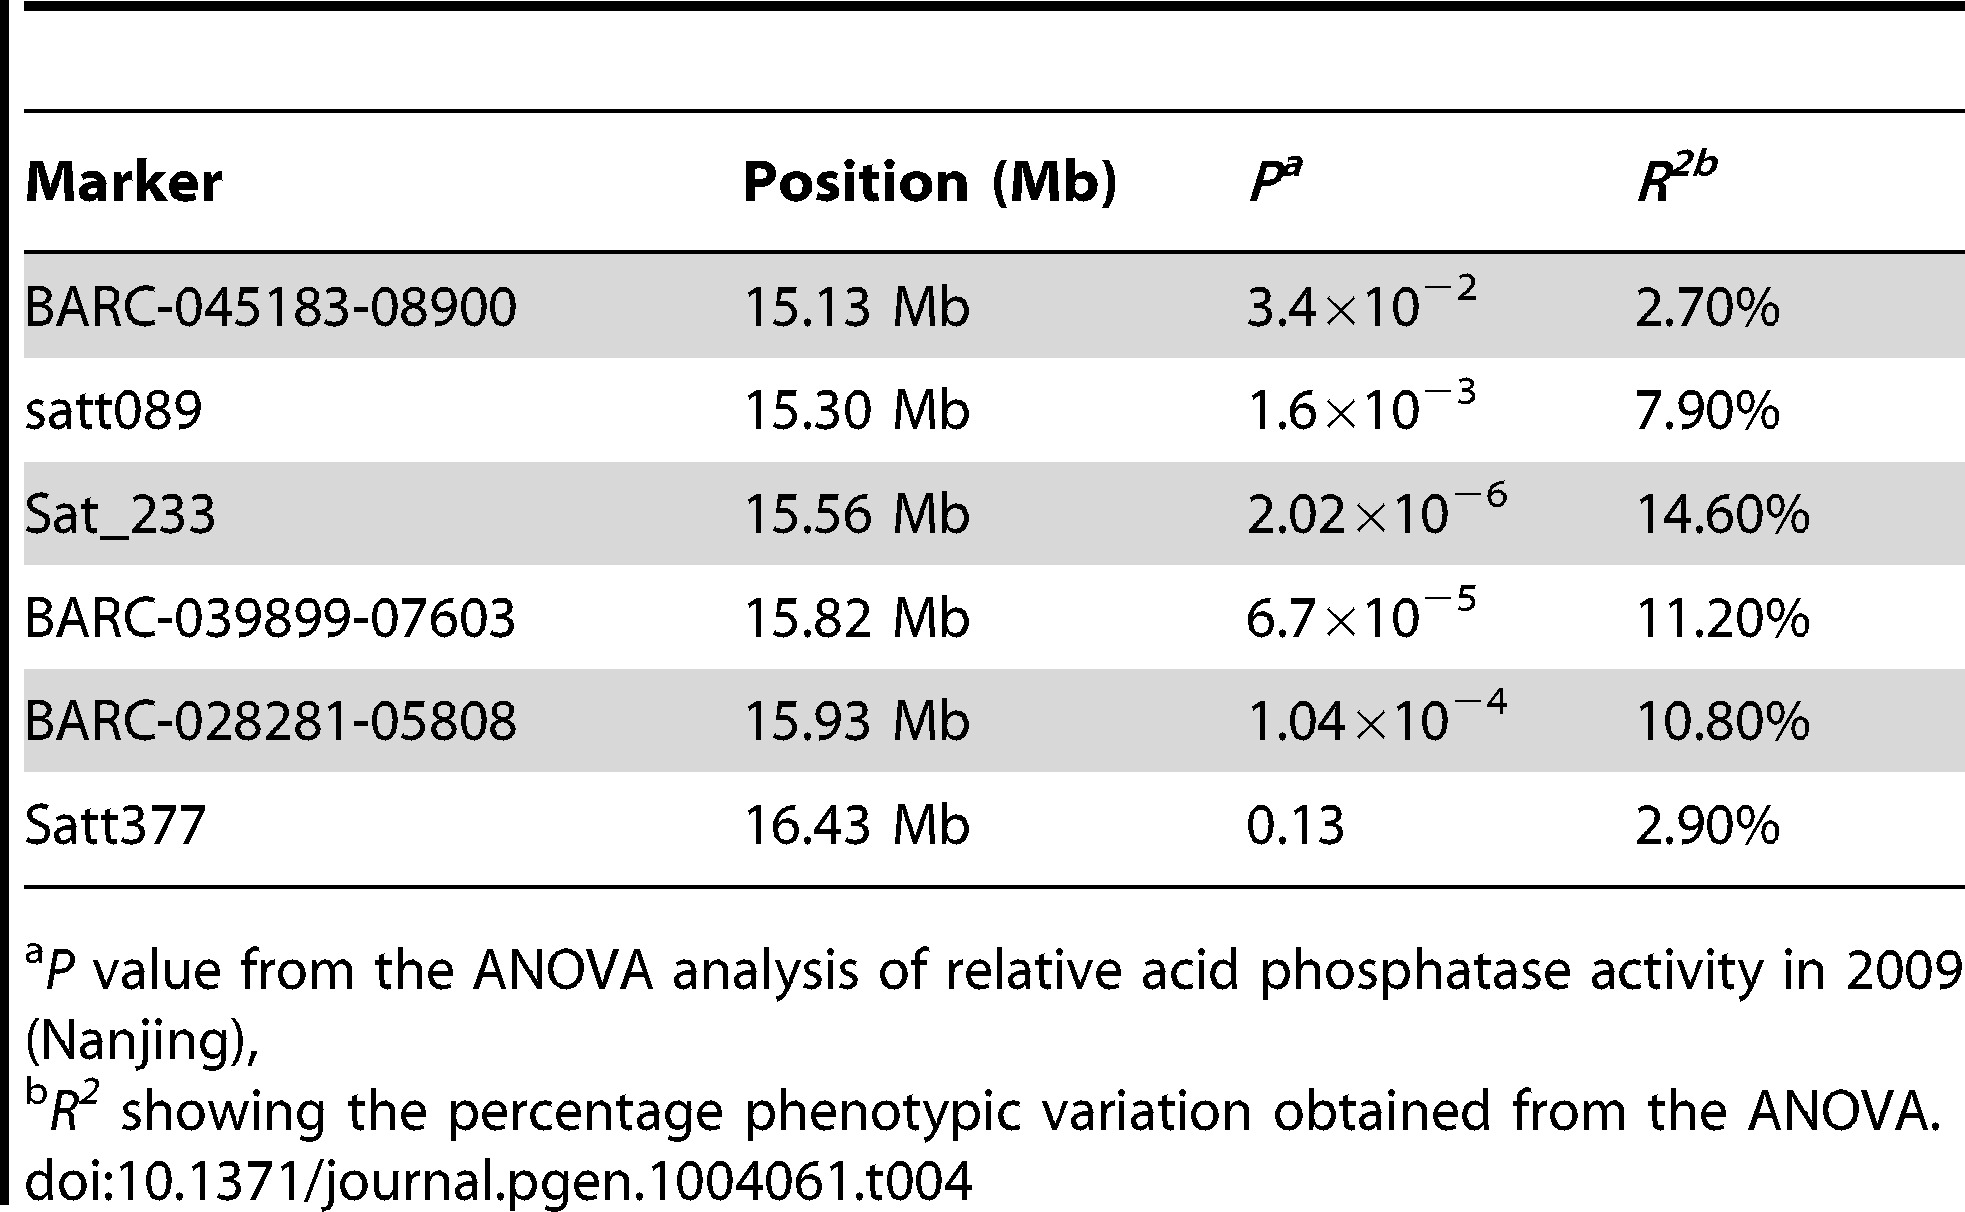 Markers associated with the relative acid phosphatase activity (RAPA) in two phosphorus conditions and their phenotypic variations.